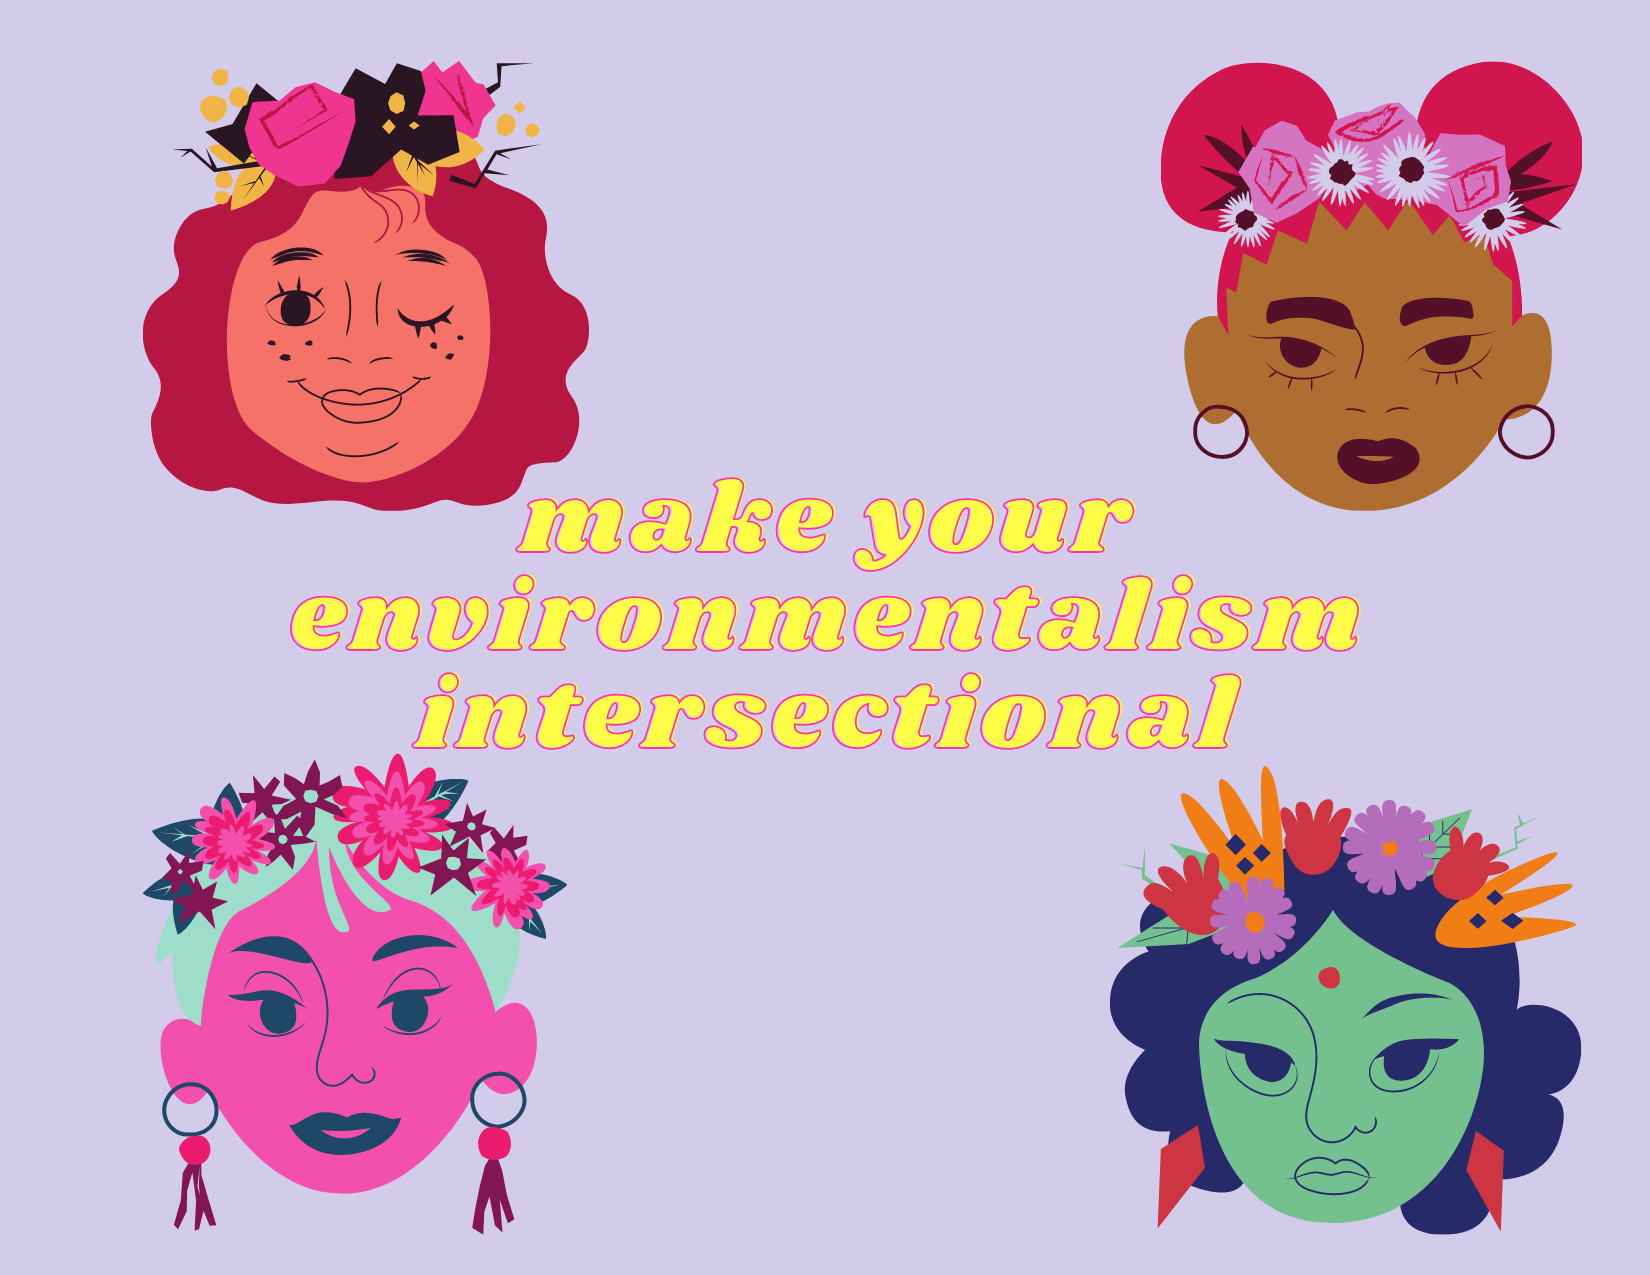 make your environmentalism intersectional